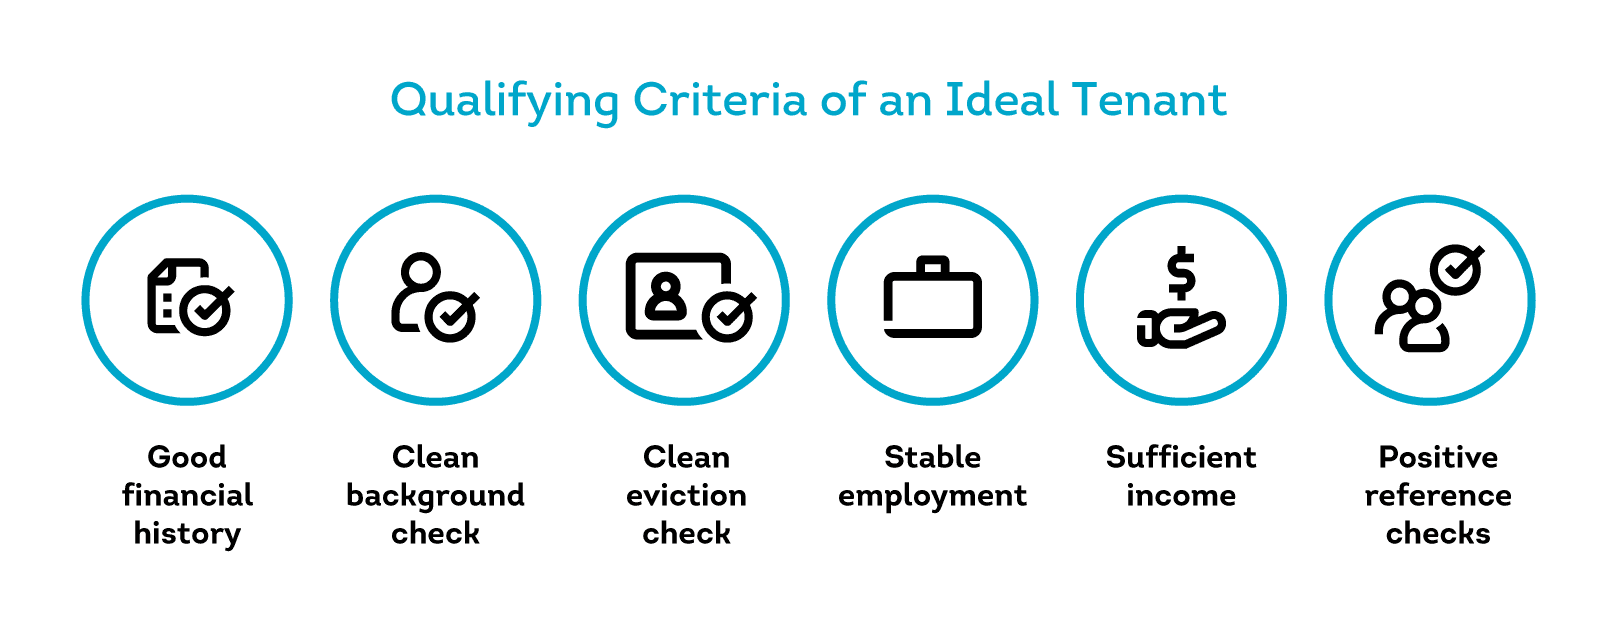 rental screening criteria to accept an applicant